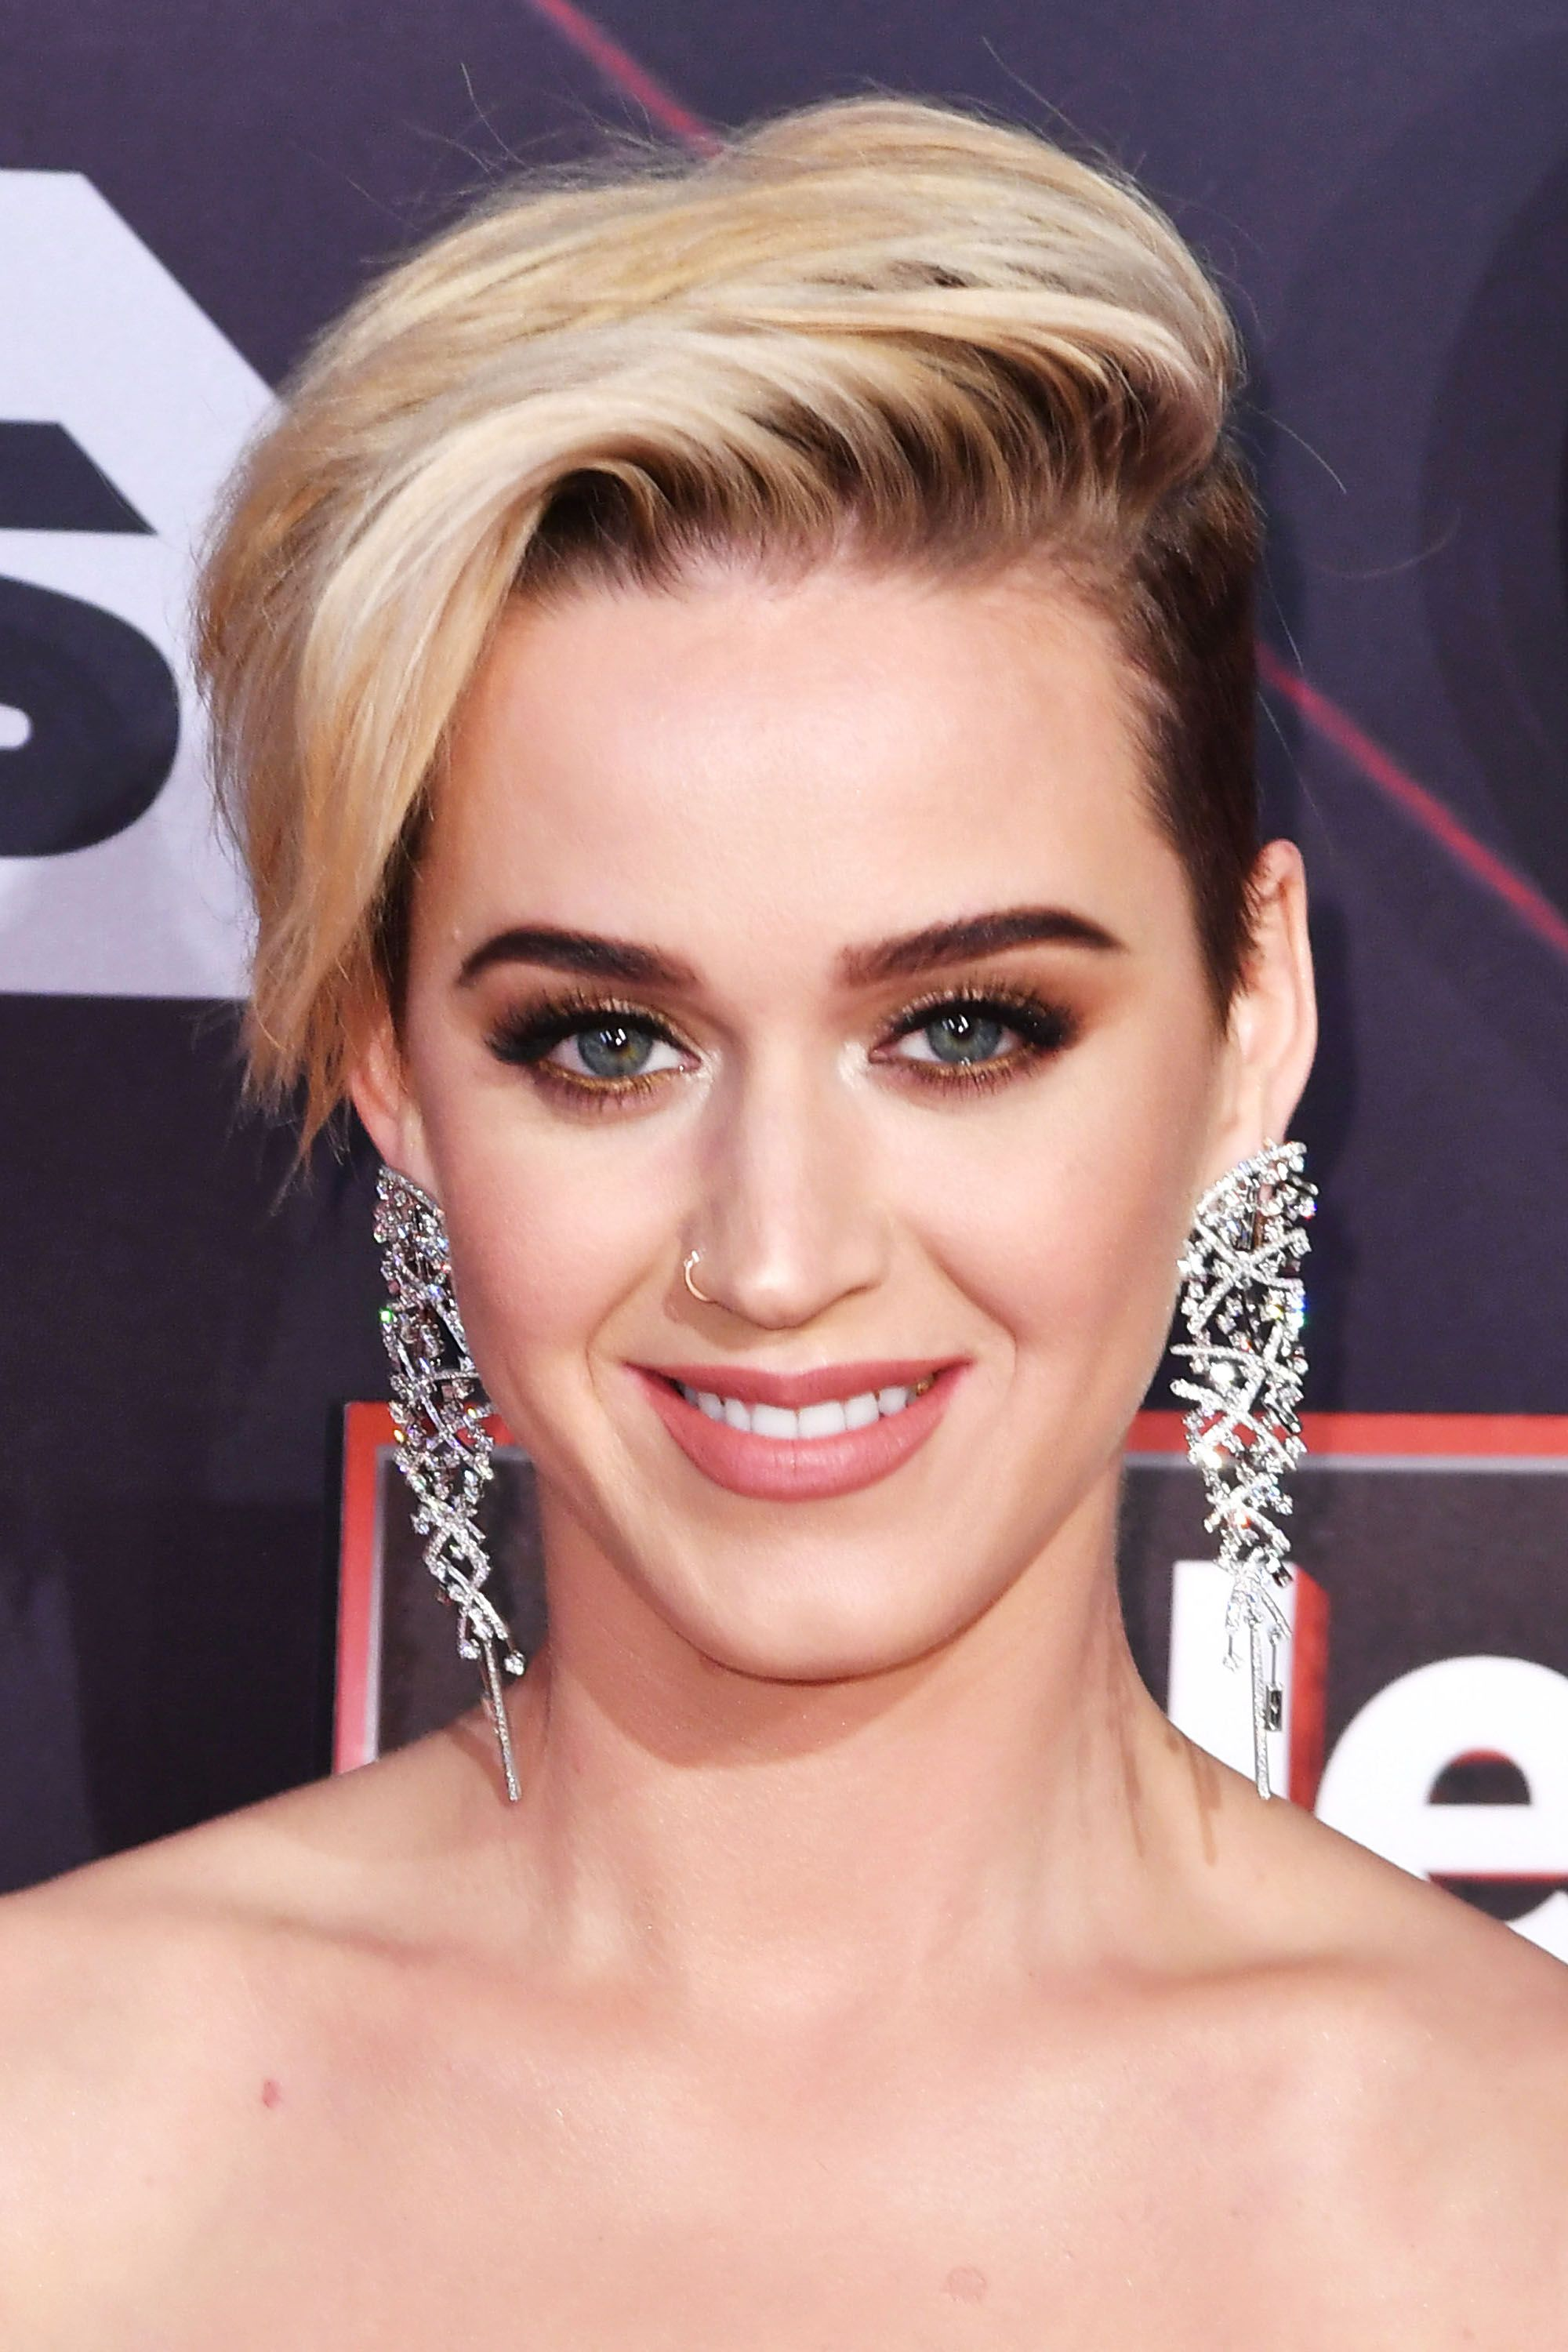 50 Of The All Time Best Celebrity Pixie Cuts Pinterest Katy